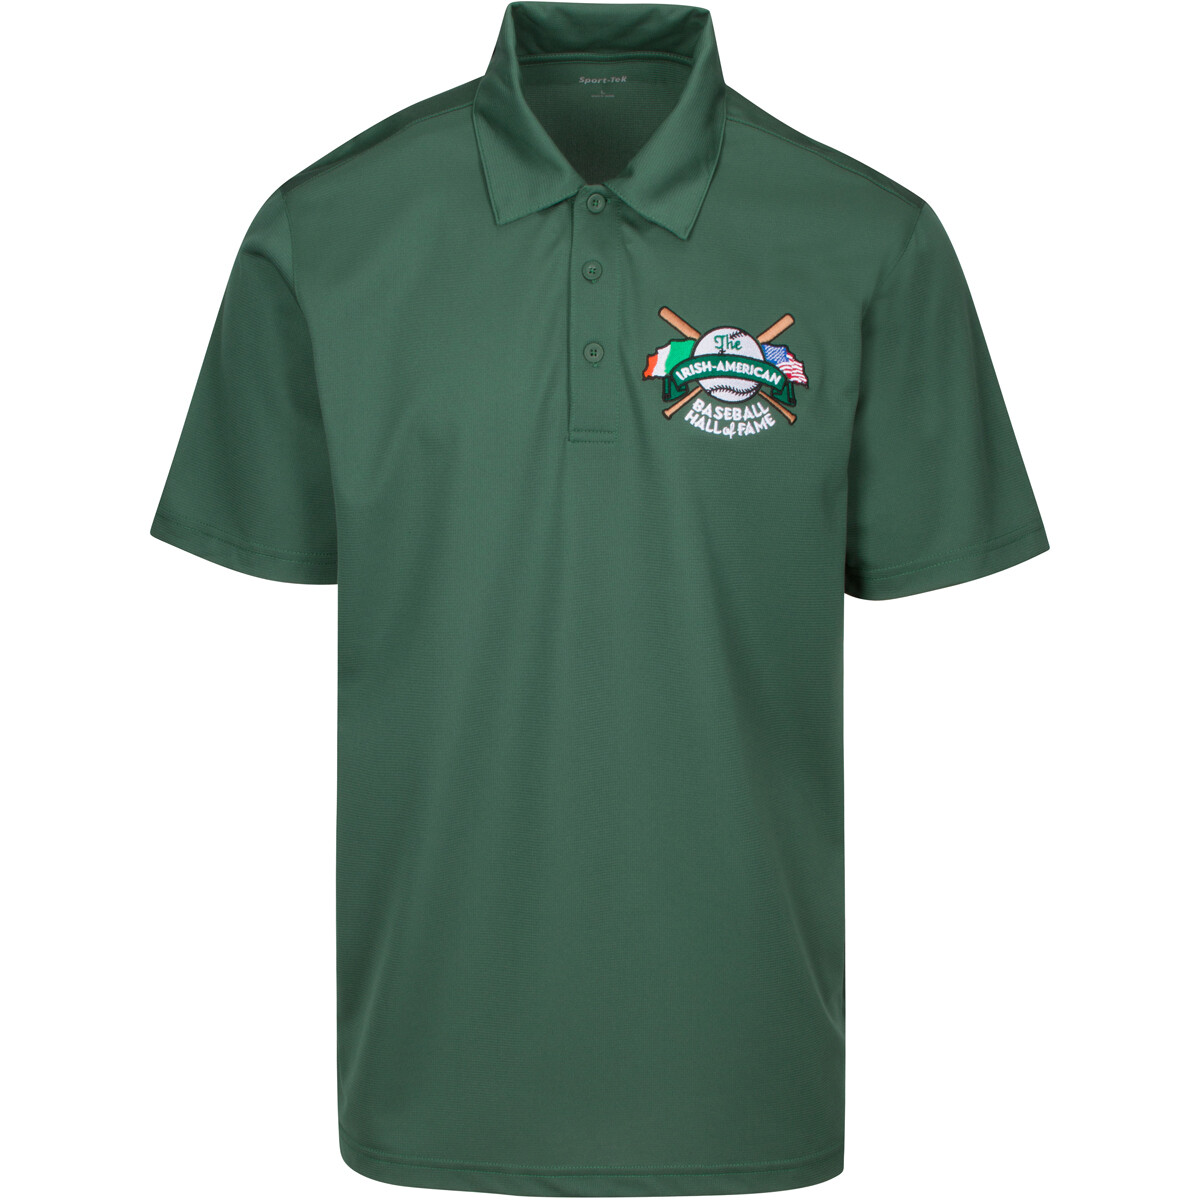 Green Irish American Baseball Hall of Fame Dri-Fit Polo by Sportek